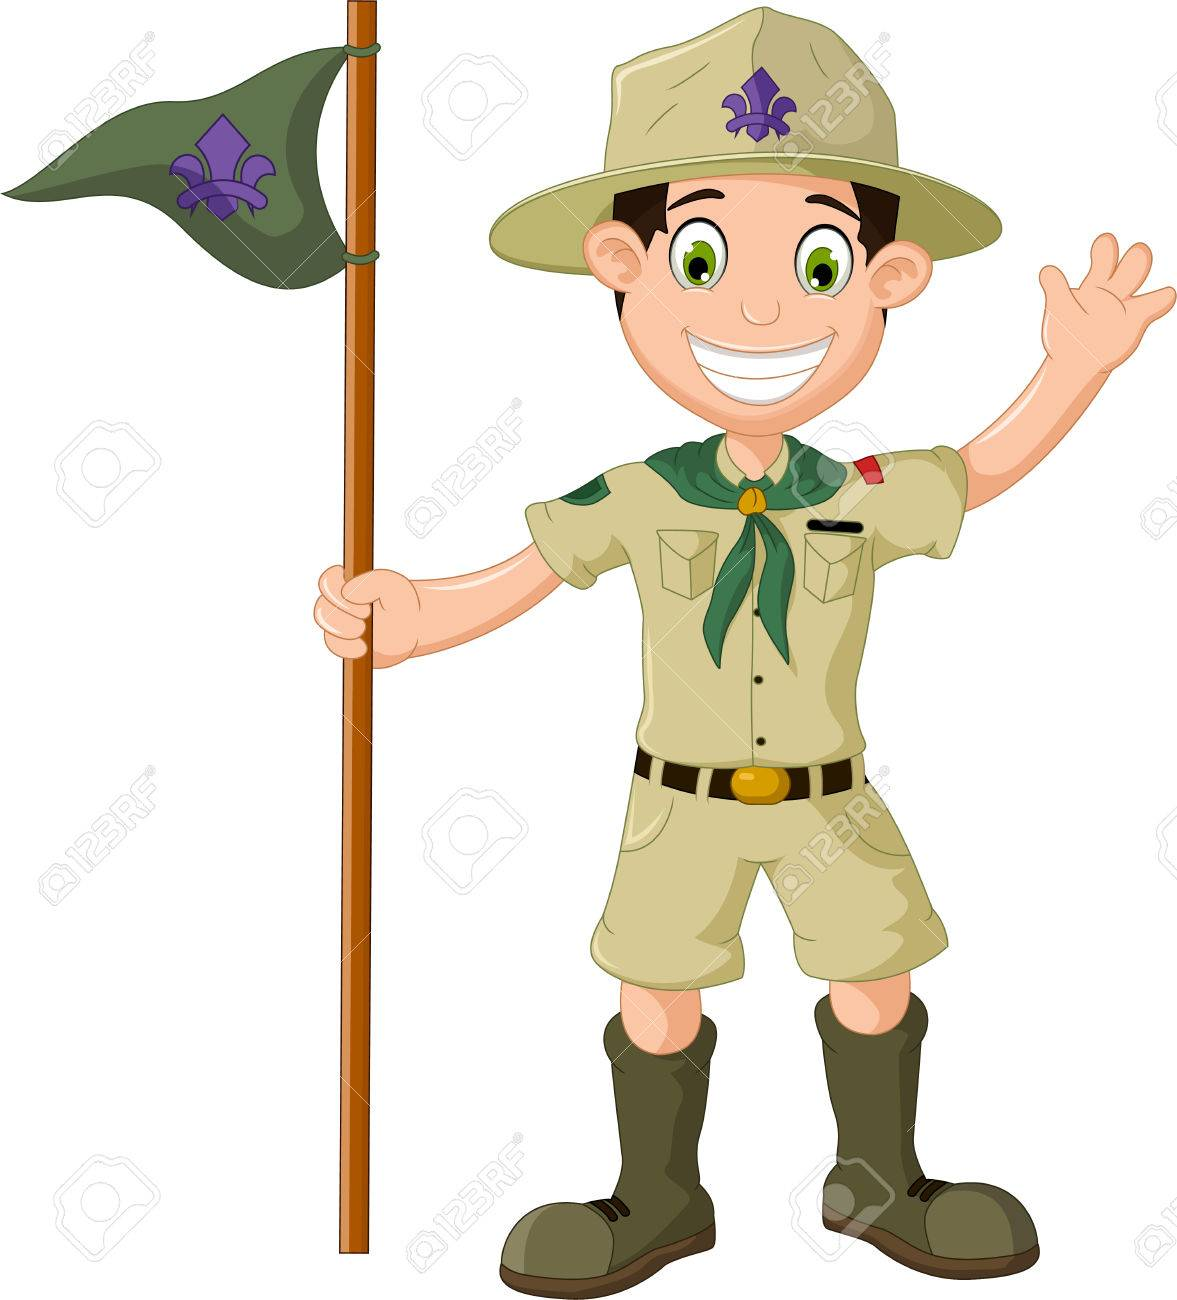 hight resolution of cute boy scout cartoon holding pole yelling stock vector 65860604